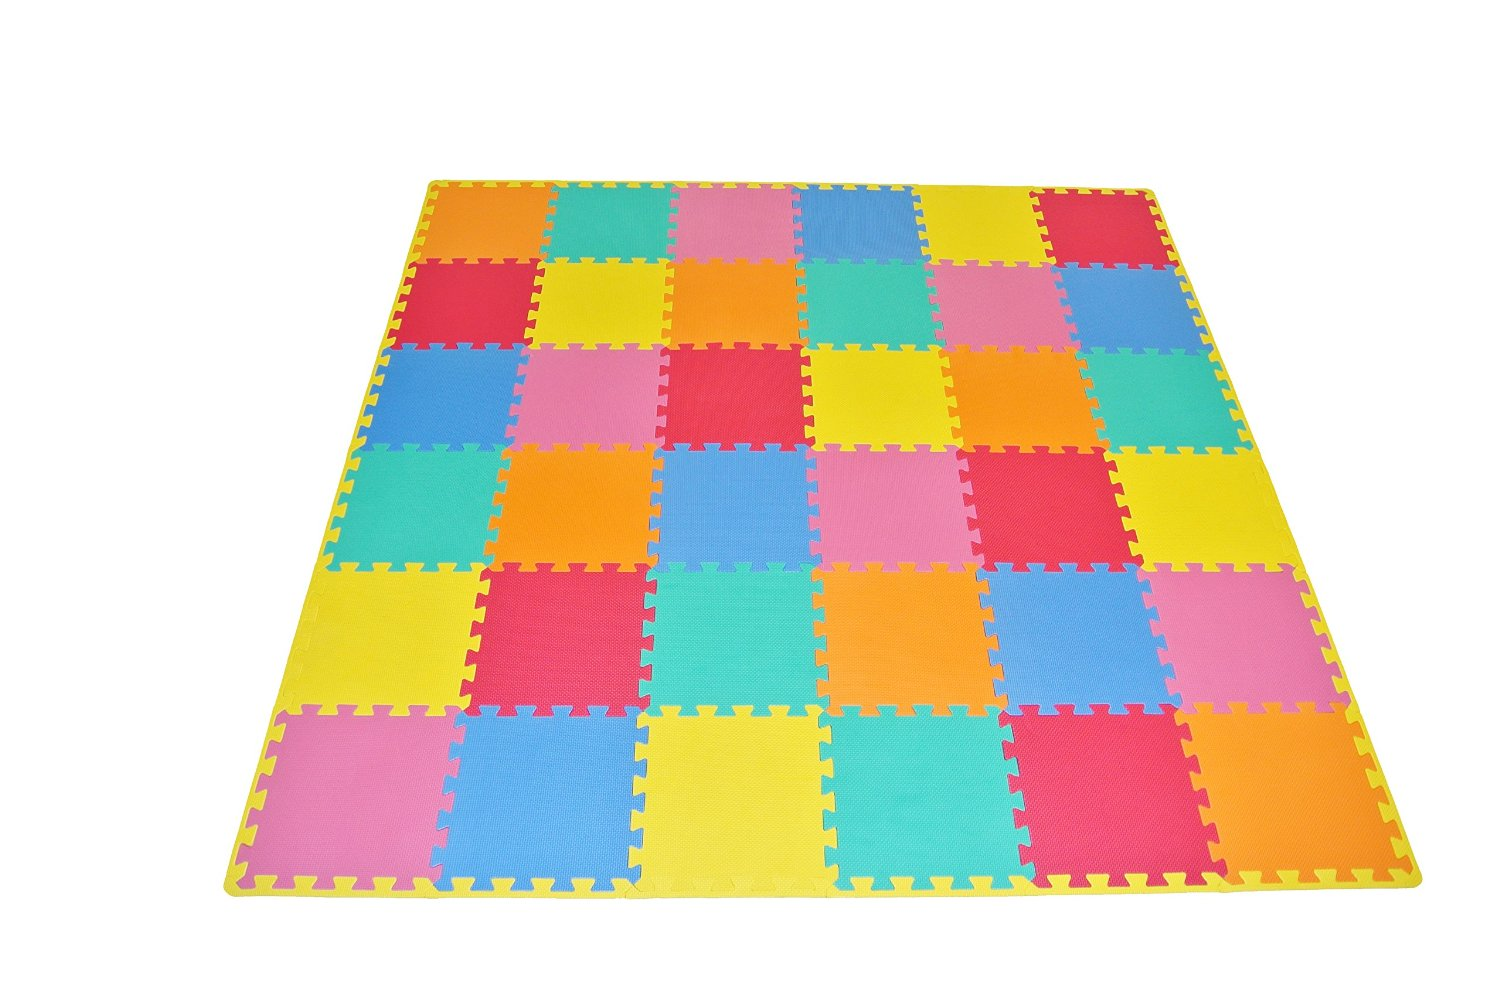 Prosource puzzle solid foam play floor mat kids toddler for Mats for kids room